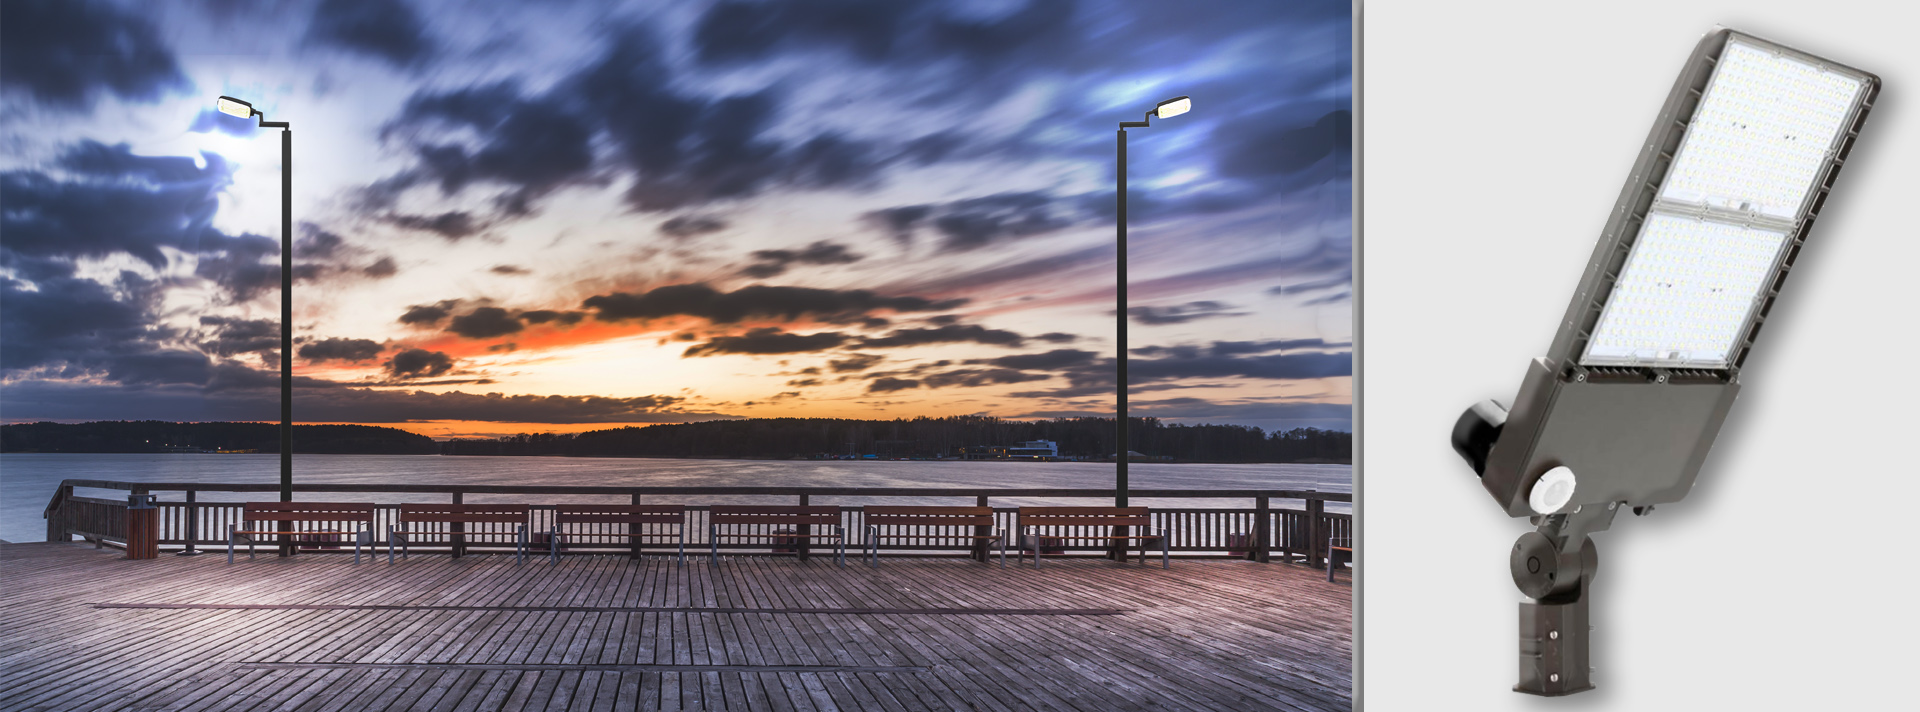 Outdoor Lighting example on a boardwalk